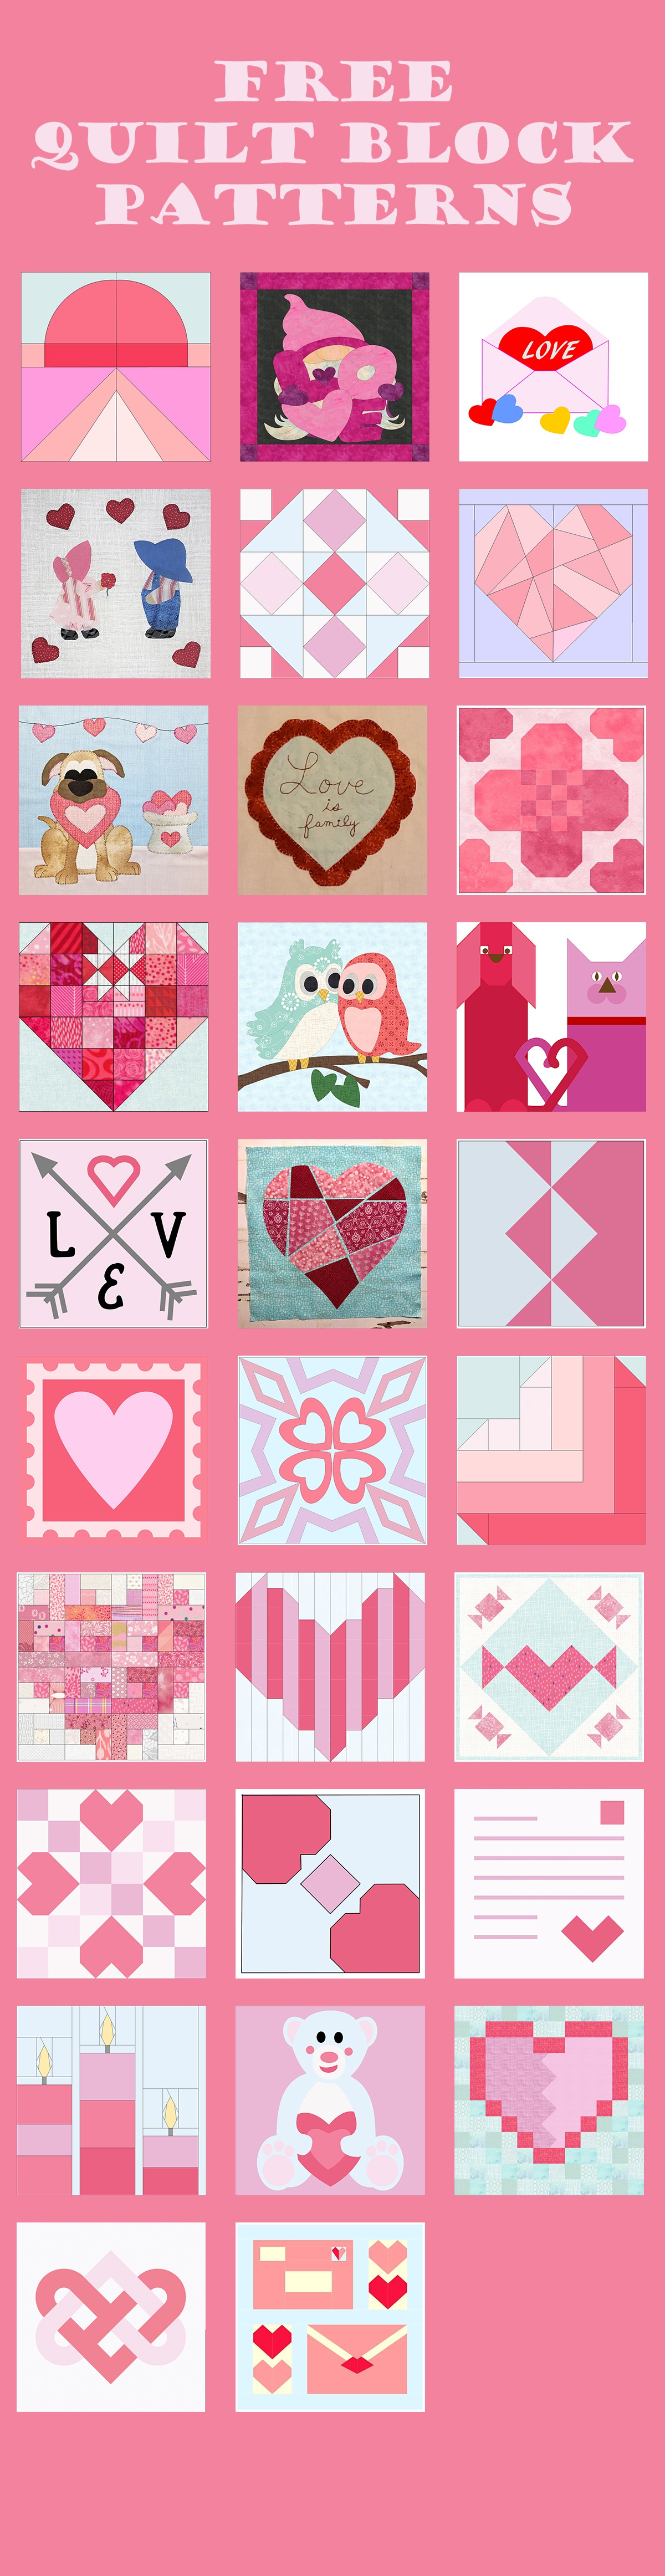 Quilt Block Mania January 2021 banner